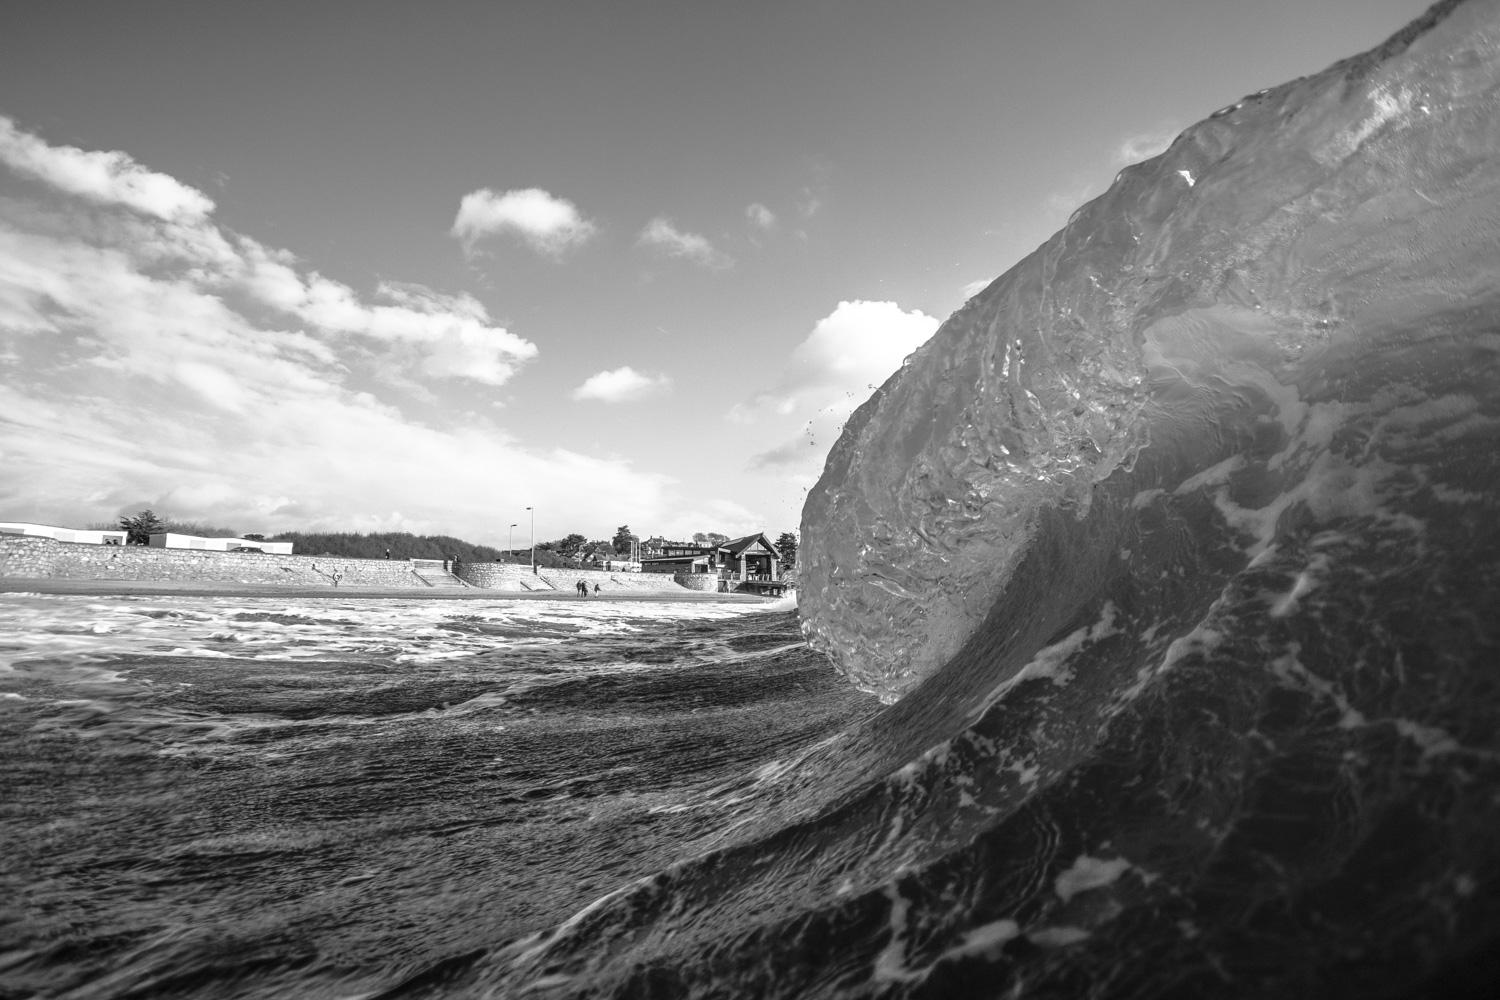 Exmouth LR (15 of 16).jpg